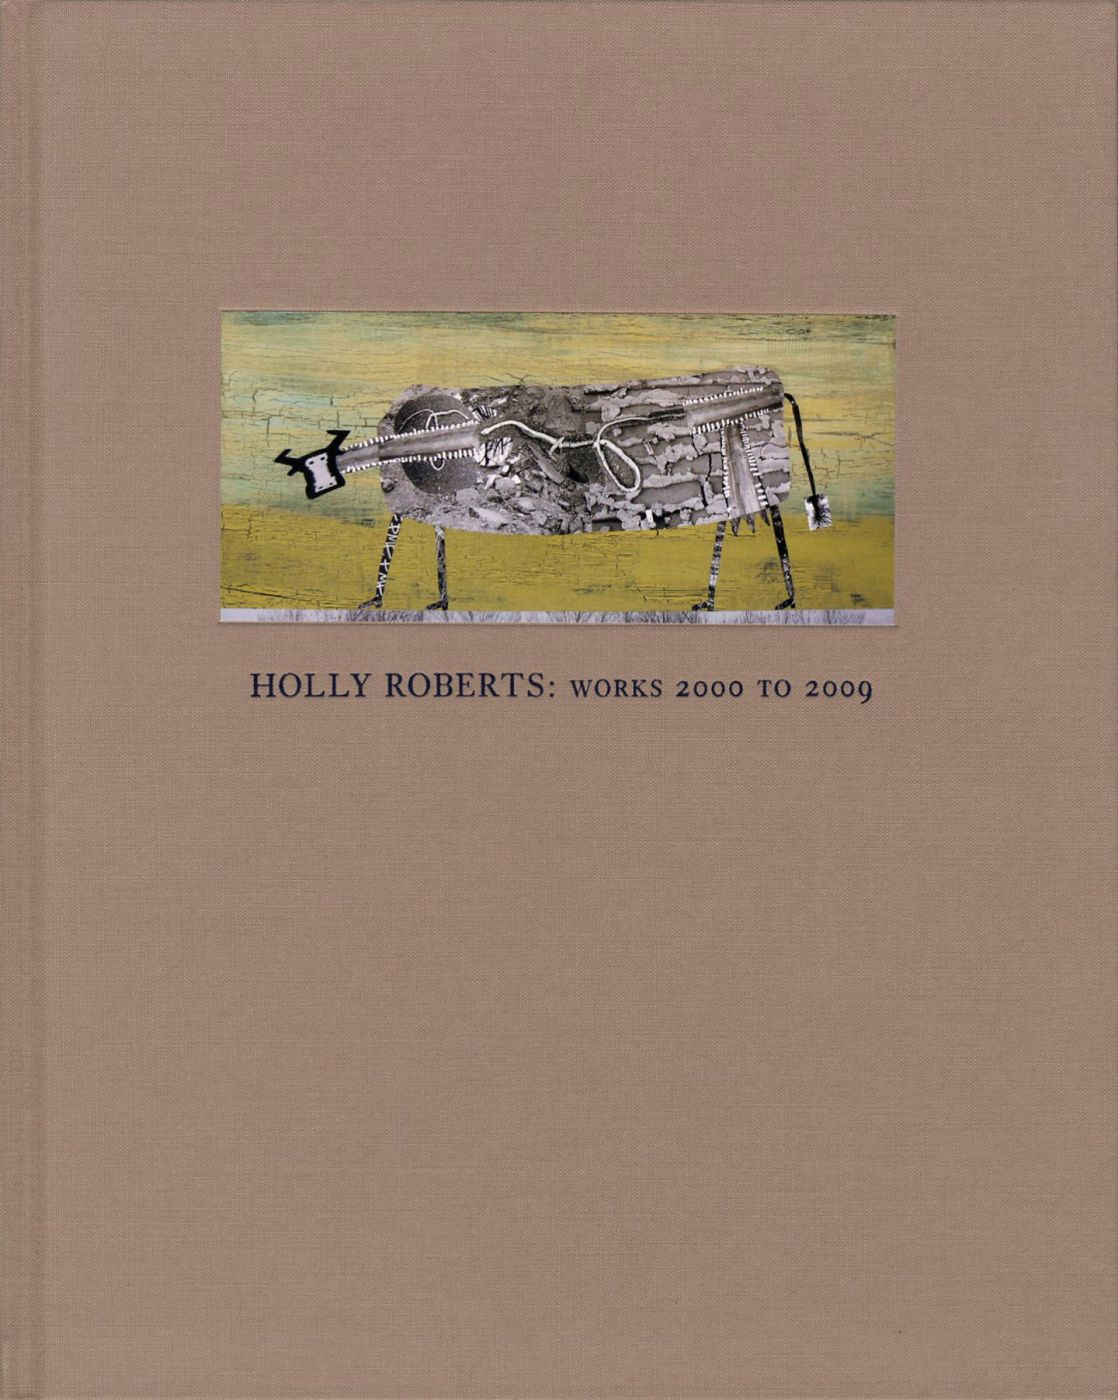 Holly Roberts: Works 2000 to 2009